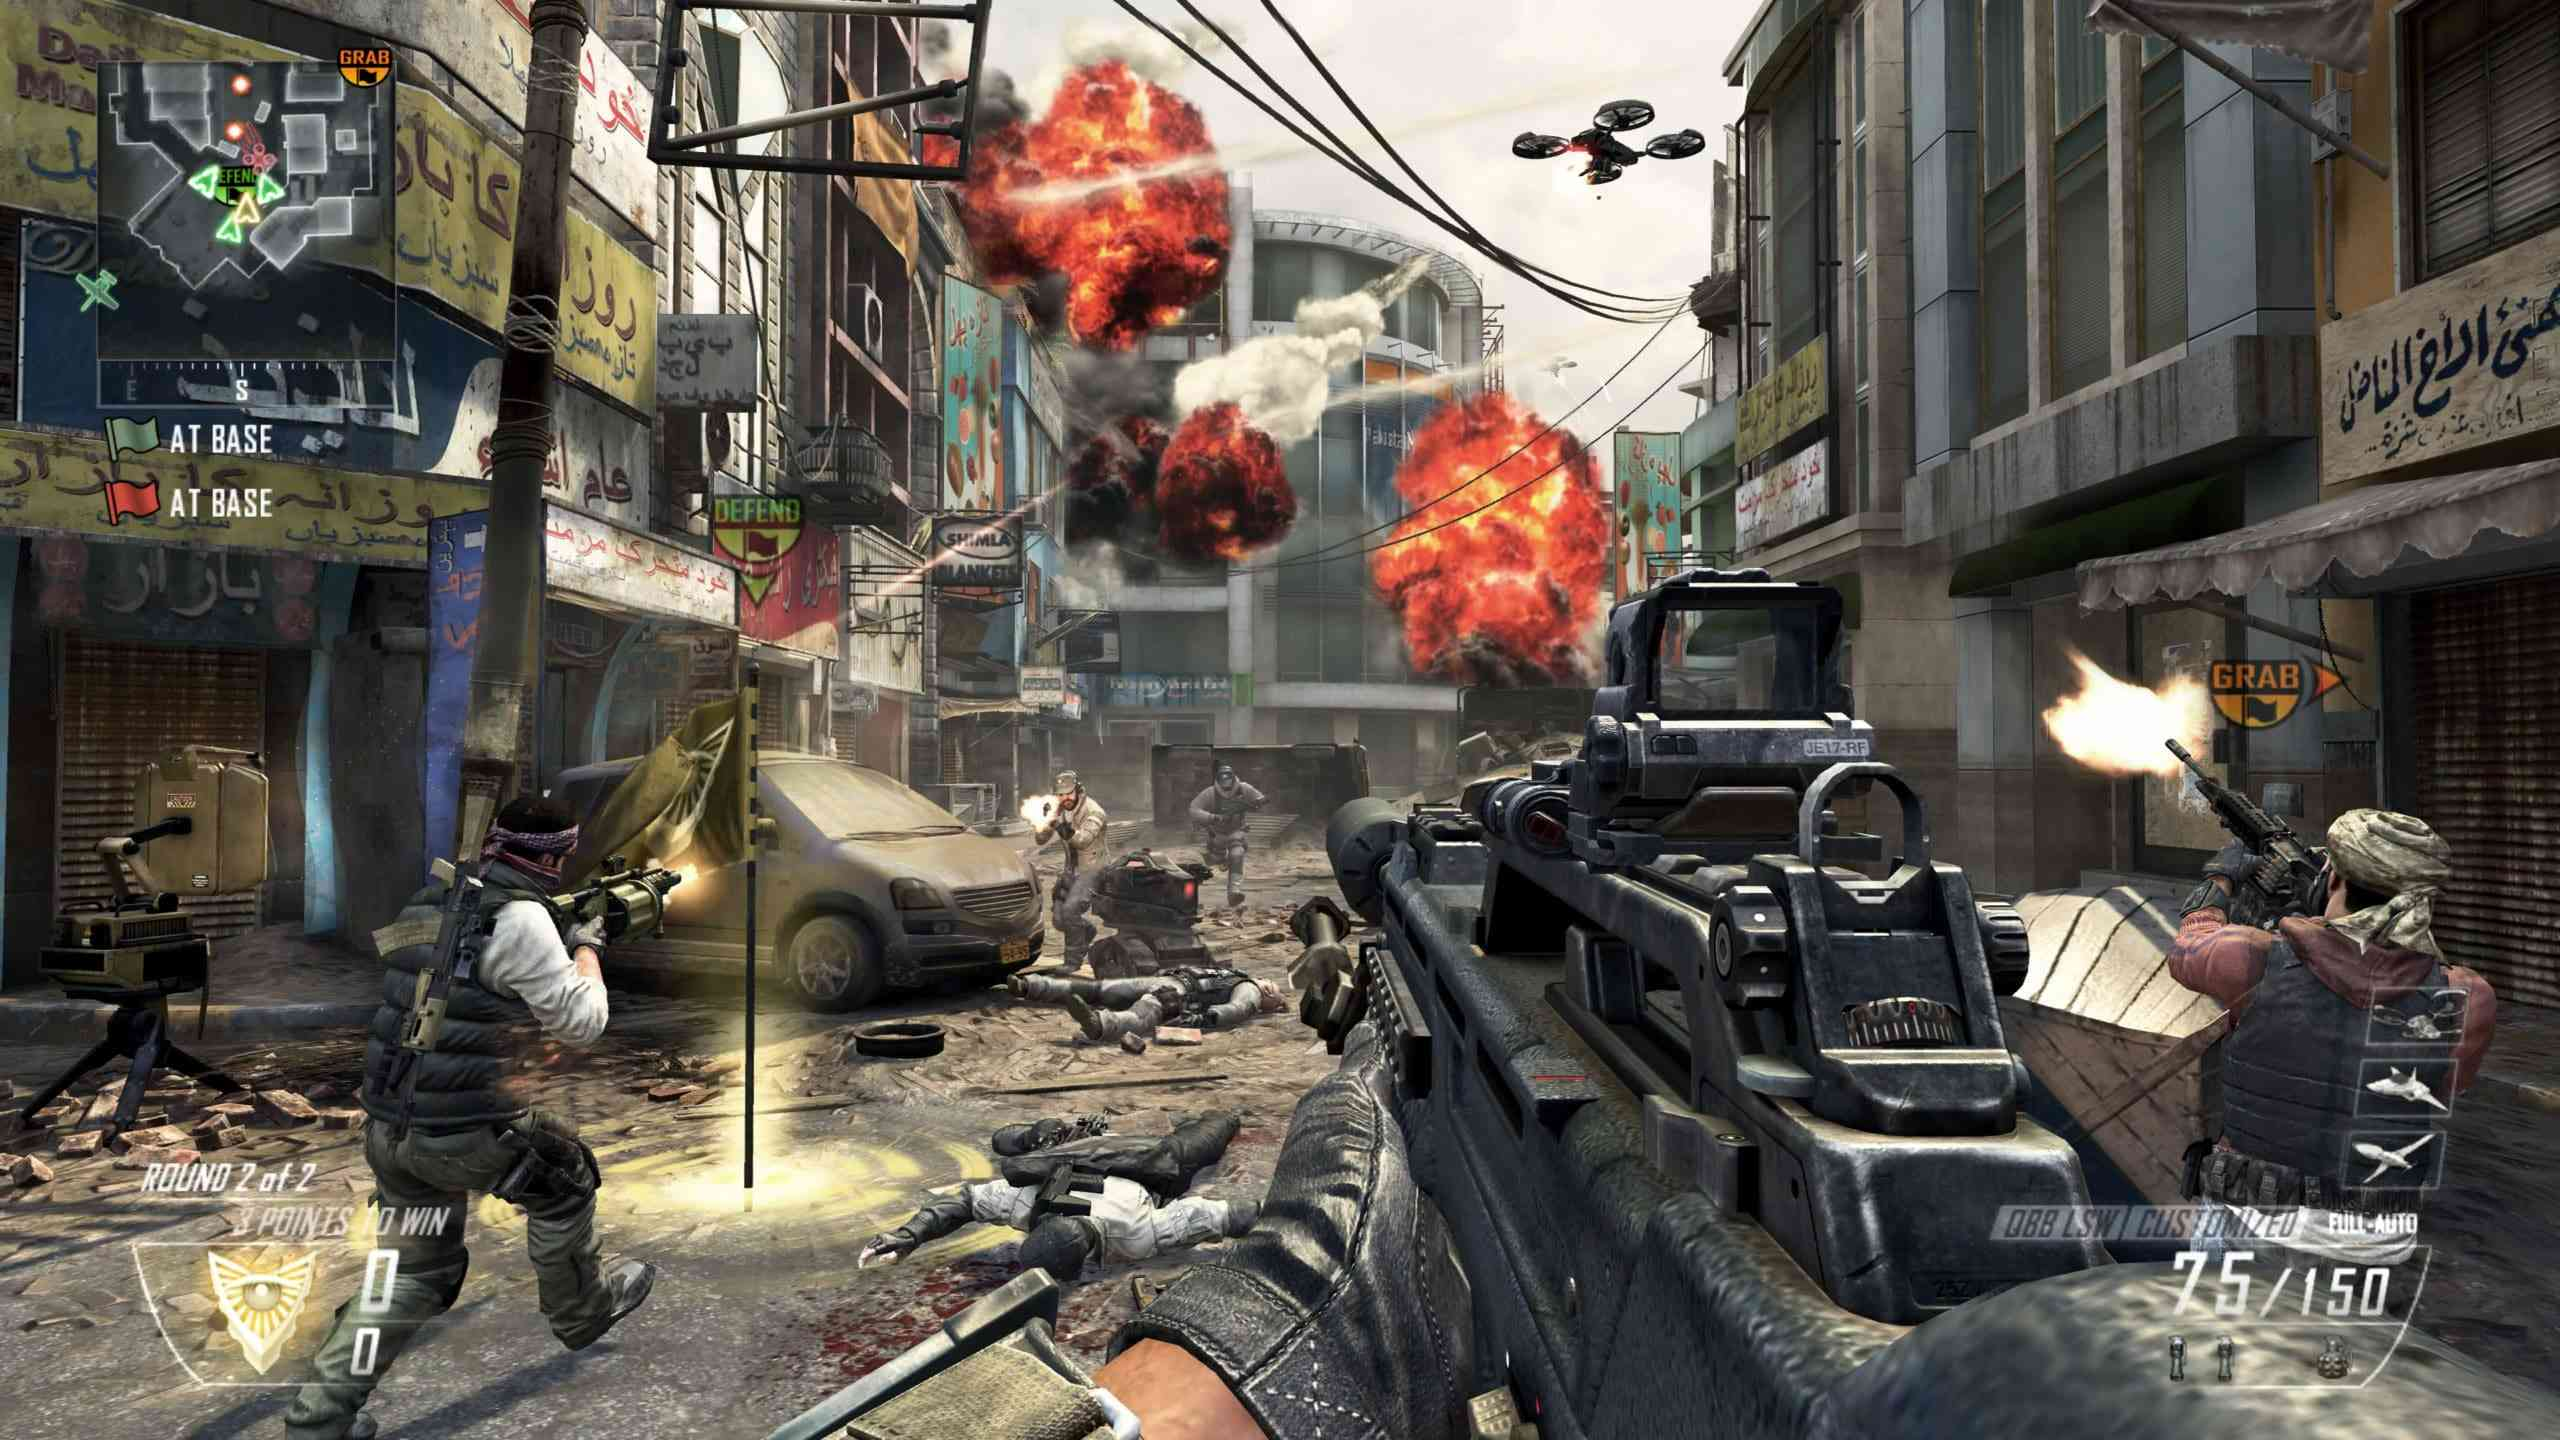 http://cogconnected.com/wp-content/uploads/2012/11/Call-of-Duty-Black-Ops-II_Overflow_Capture-the-Flag.jpg